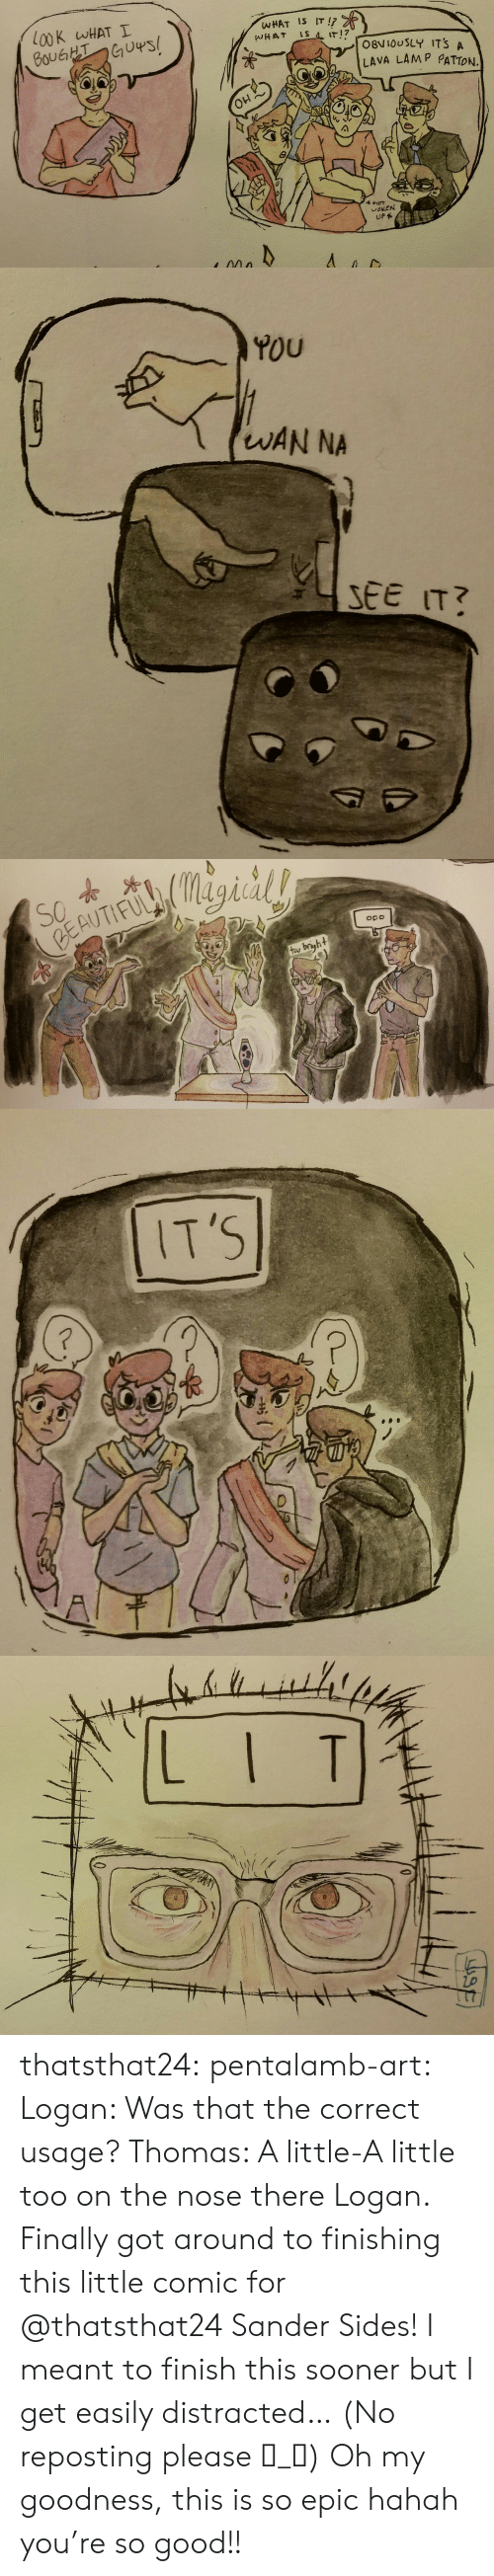 Target, Tumblr, and Blog: L00K WHAT I  WHAT Is IT  LAVA LAMP PATTON.  0  UP   YOU  WAN NA   6  tog bright thatsthat24:  pentalamb-art: Logan: Was that the correct usage? Thomas: A little-A little too on the nose there Logan.   Finally got around to finishing this little comic for @thatsthat24 Sander Sides! I meant to finish this sooner but I get easily distracted…  (No reposting please ಠ_ಠ)  Oh my goodness, this is so epic hahah you're so good!!